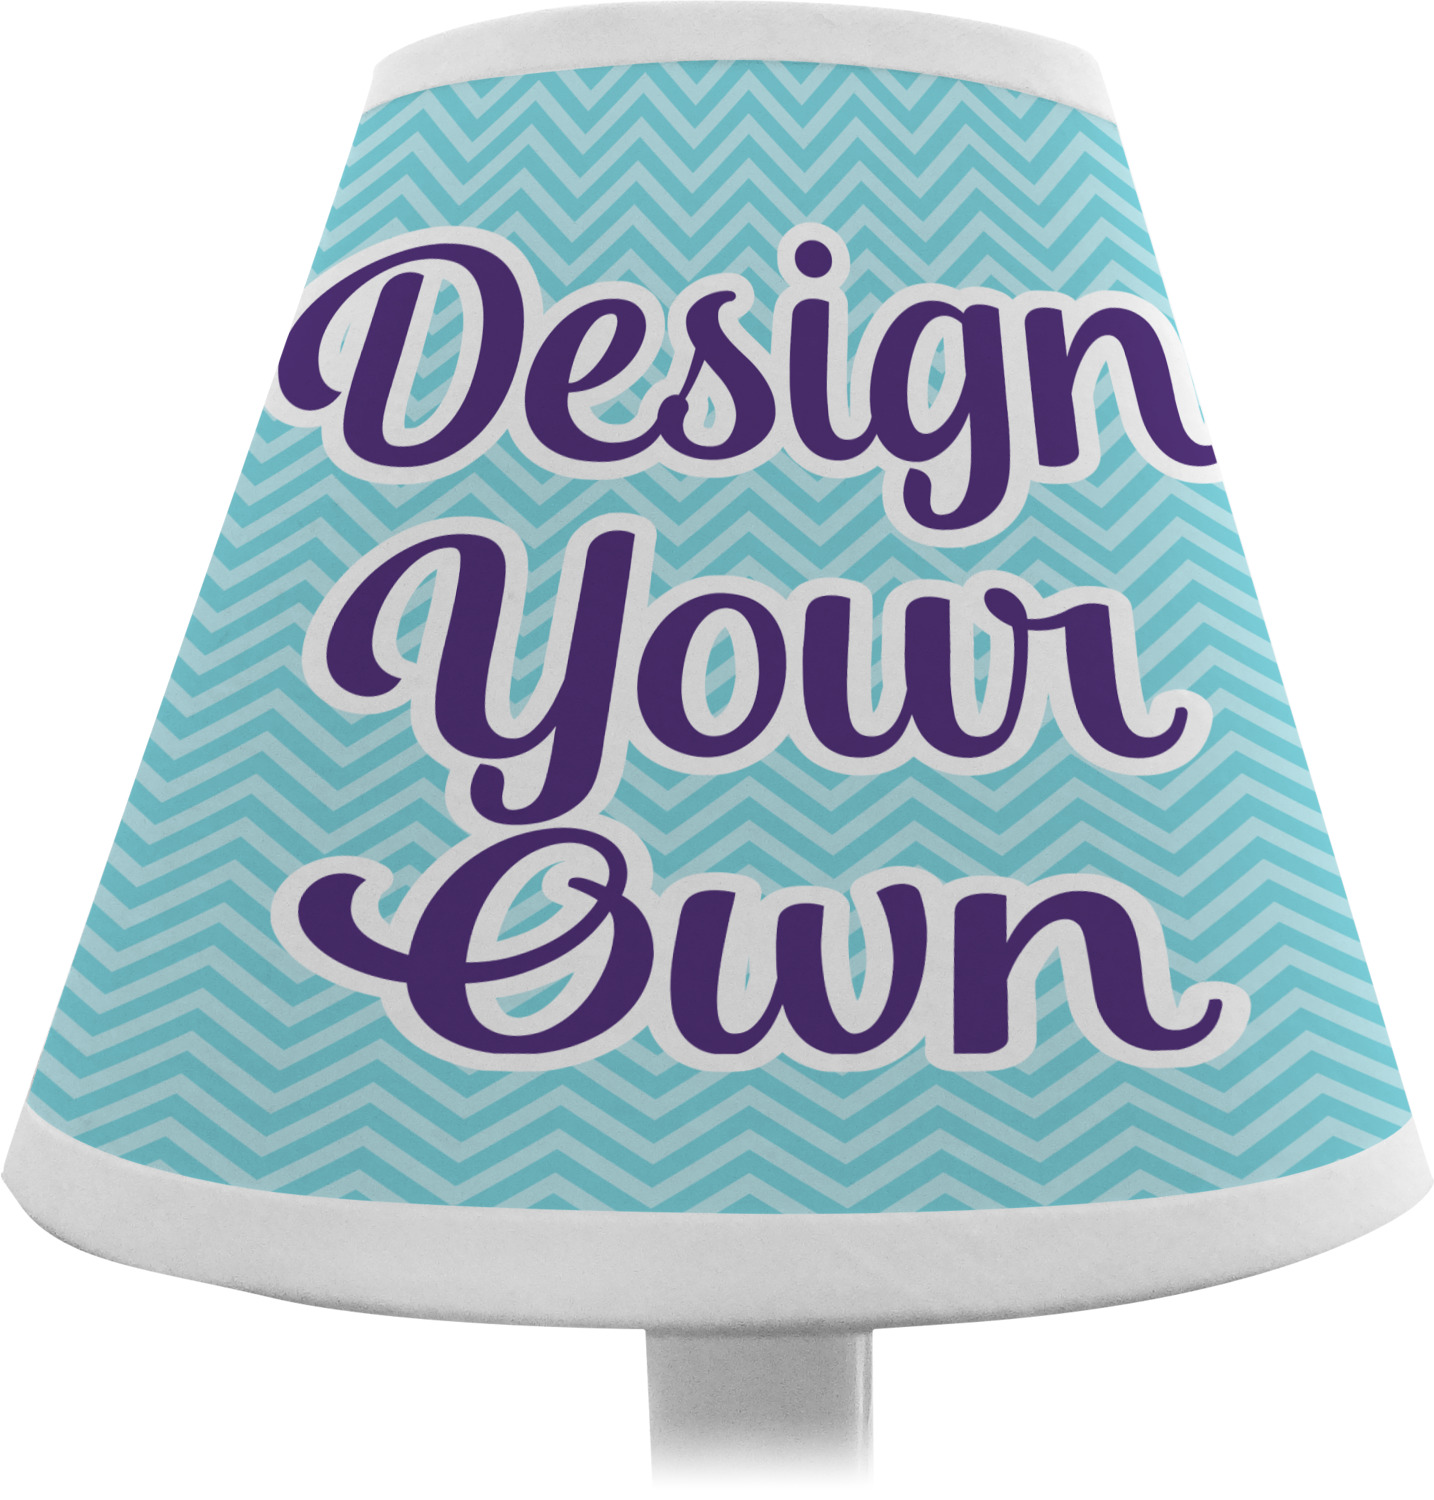 Design your own chandelier lamp shade personalized for Decorate your own lampshade